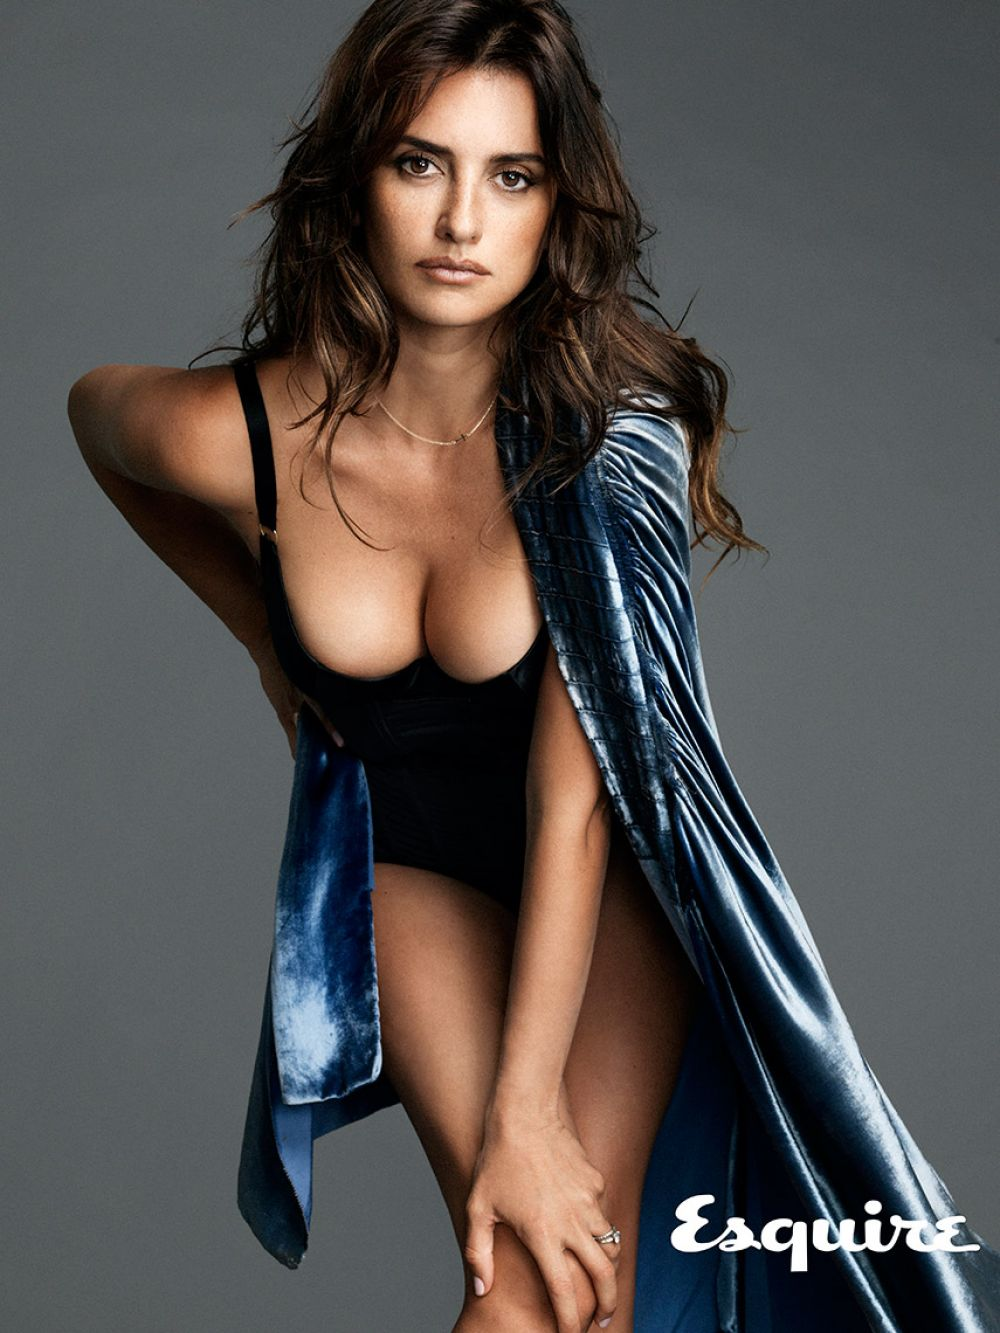 PENELOPE CRUZ in Esquire Magazine, November 2014 Issue